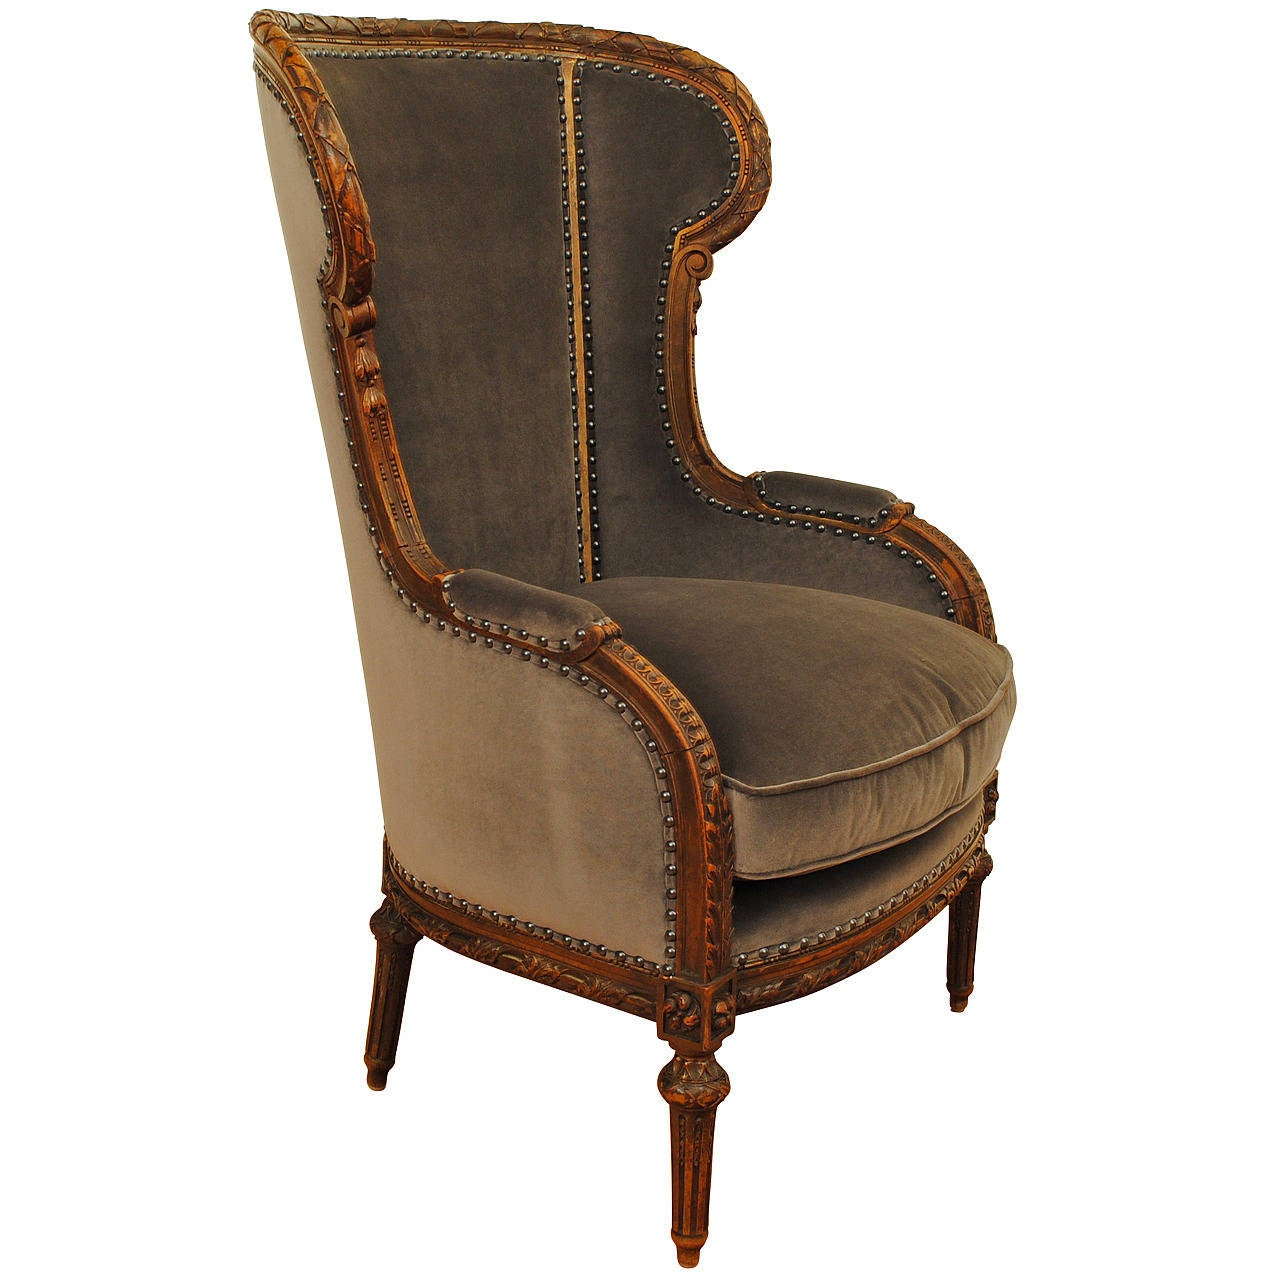 french louis xvi style carved walnut and upholstered bergere at 1stdibs. Black Bedroom Furniture Sets. Home Design Ideas